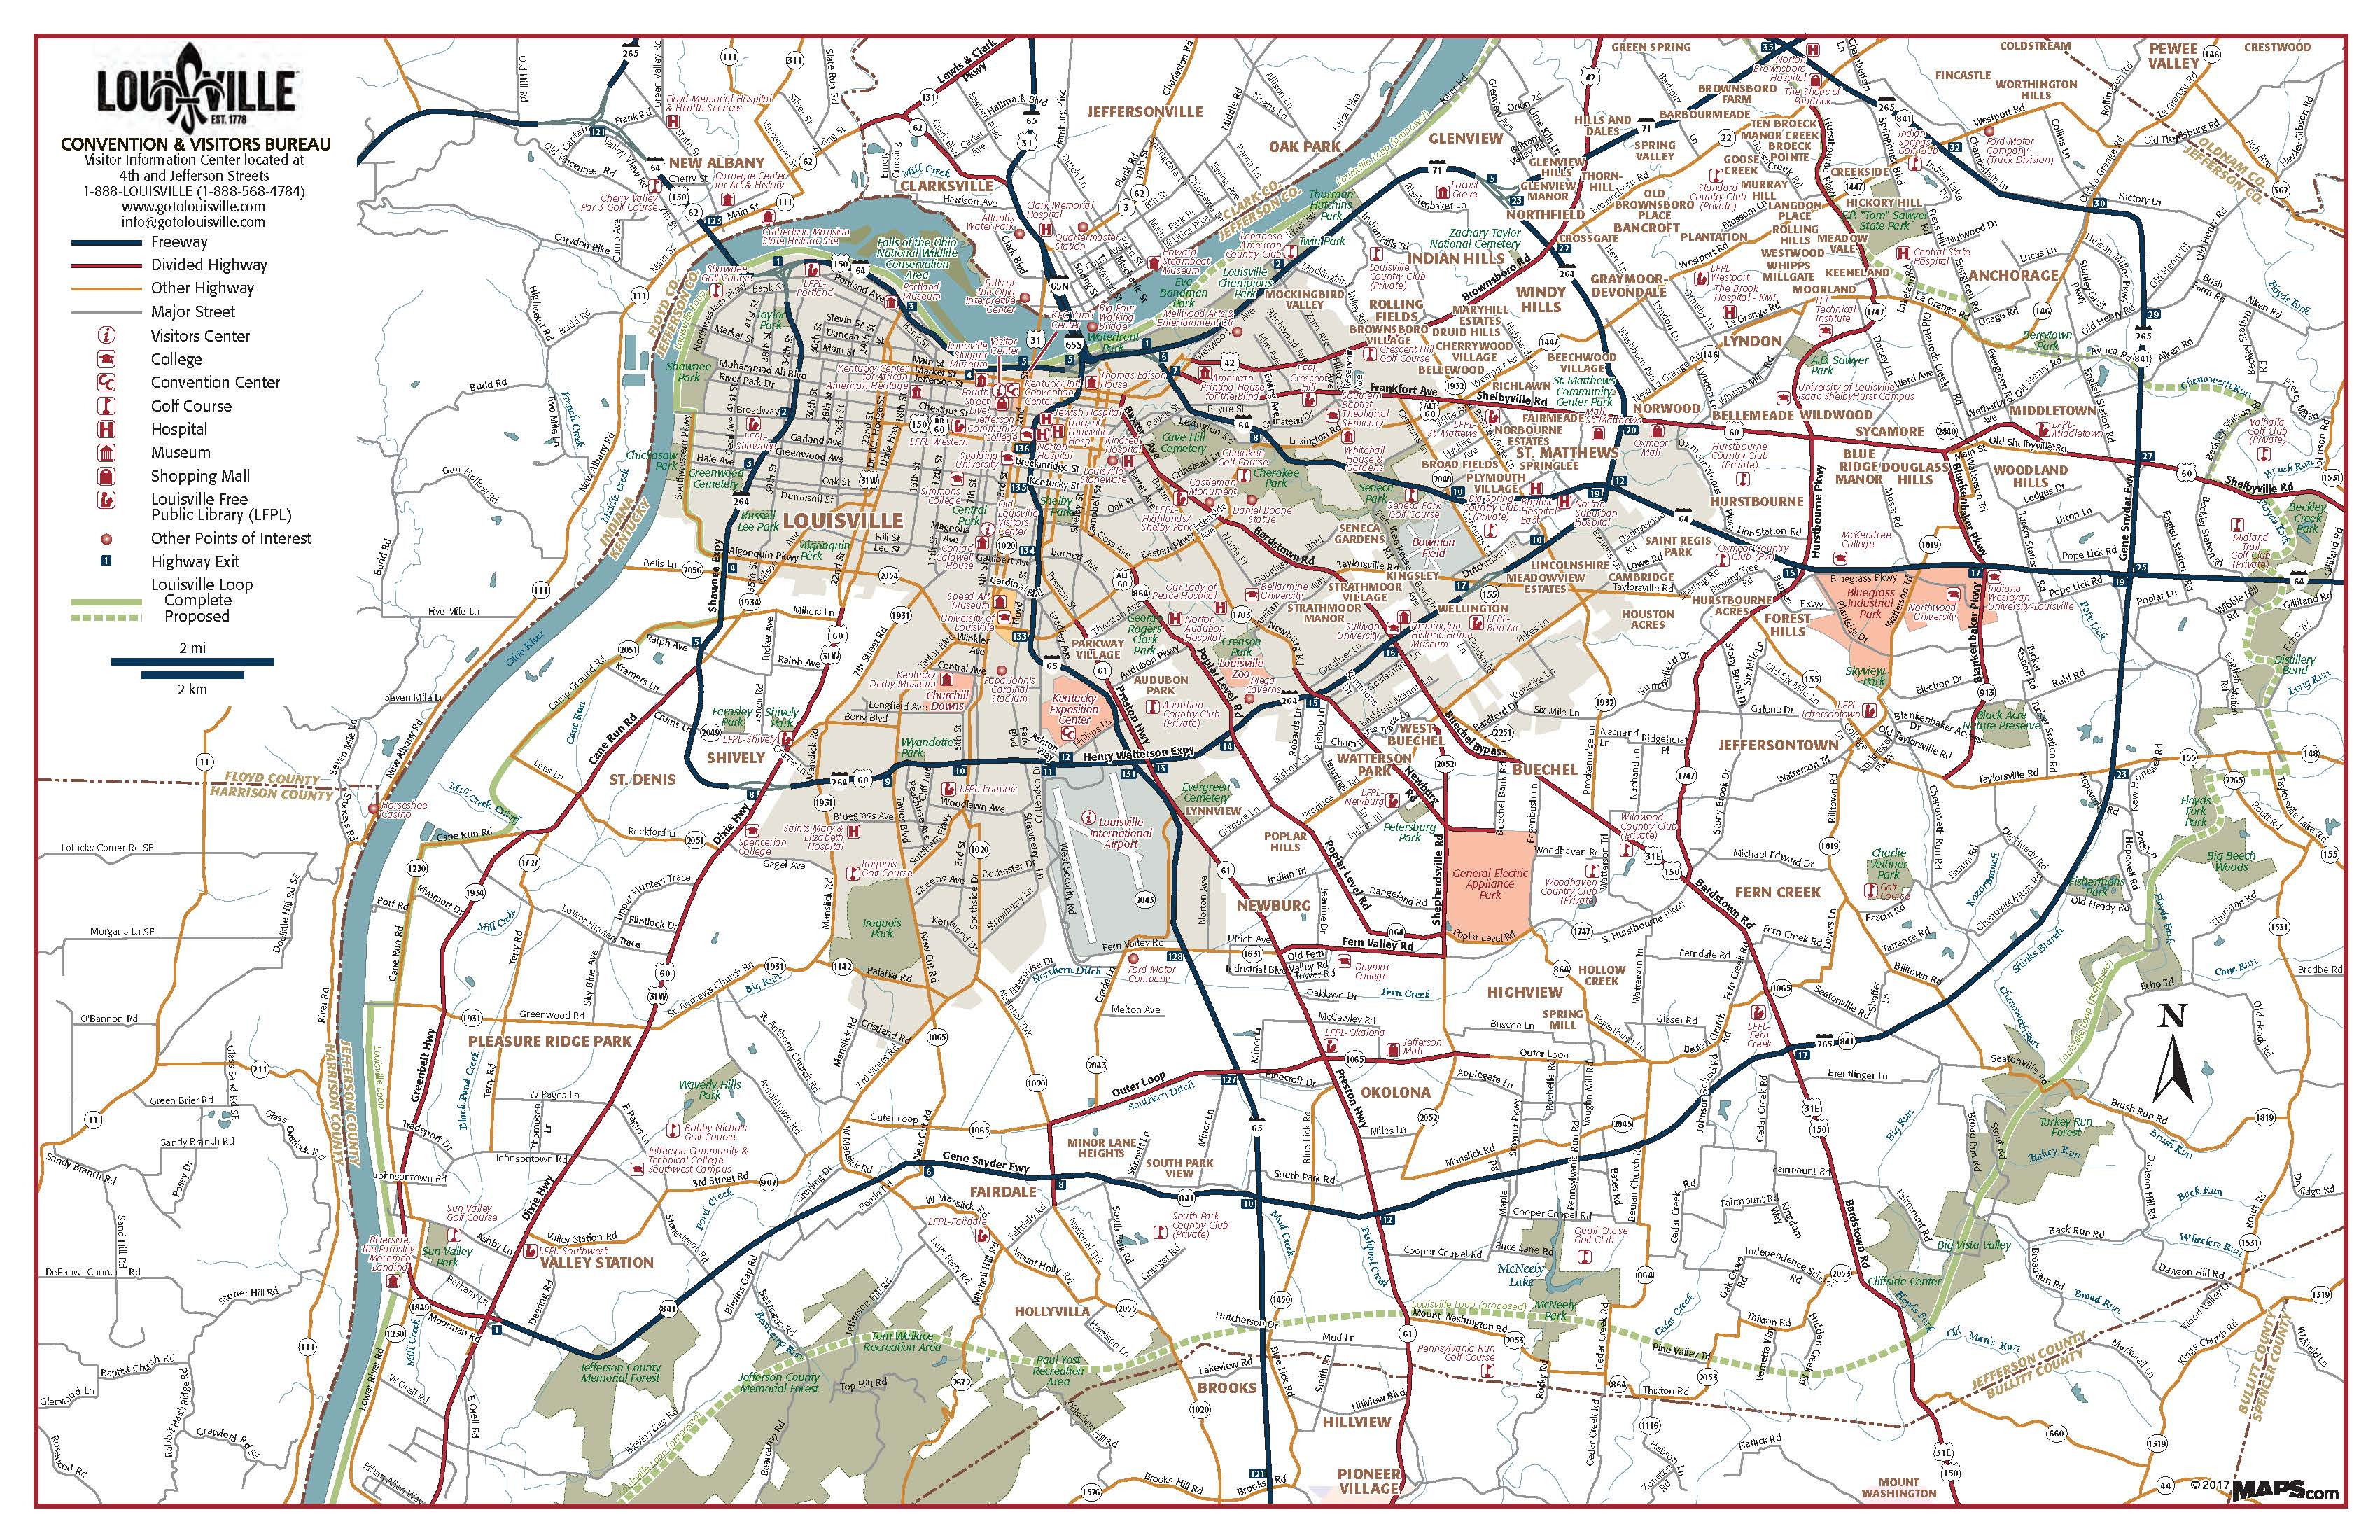 Map of Louisville KY : GoToLouisville.com Official Travel Source Kentucky Maps on georgia map, maine map, montana map, idaho map, mississippi map, land between the lakes map, north carolina map, kansas map, ky map, michigan map, state map, louisiana map, florida map, usa map, texas map, midwest map, maryland map, ohio map, south carolina map, illinois map, tennessee map, new jersey map, california map, virginia map, colorado map, indiana map, hawaii map, missouri map, minnesota map, iowa map,